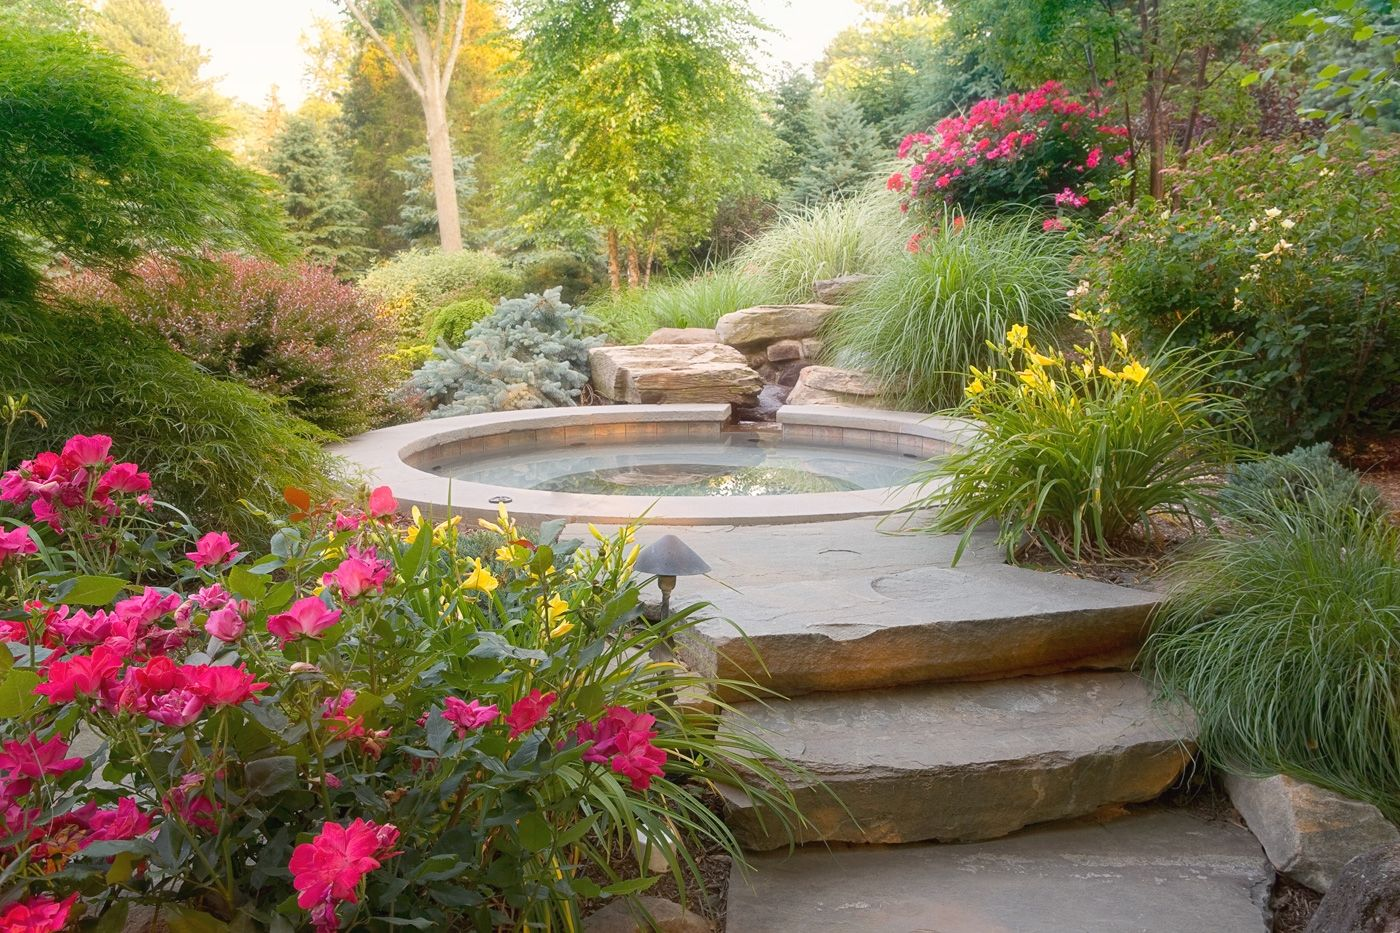 Creative Diy Landscape Designs For You To Try For Your Patio Native Home Garden Landscape Lan Modern Landscaping Landscape Design Outdoor Landscape Design